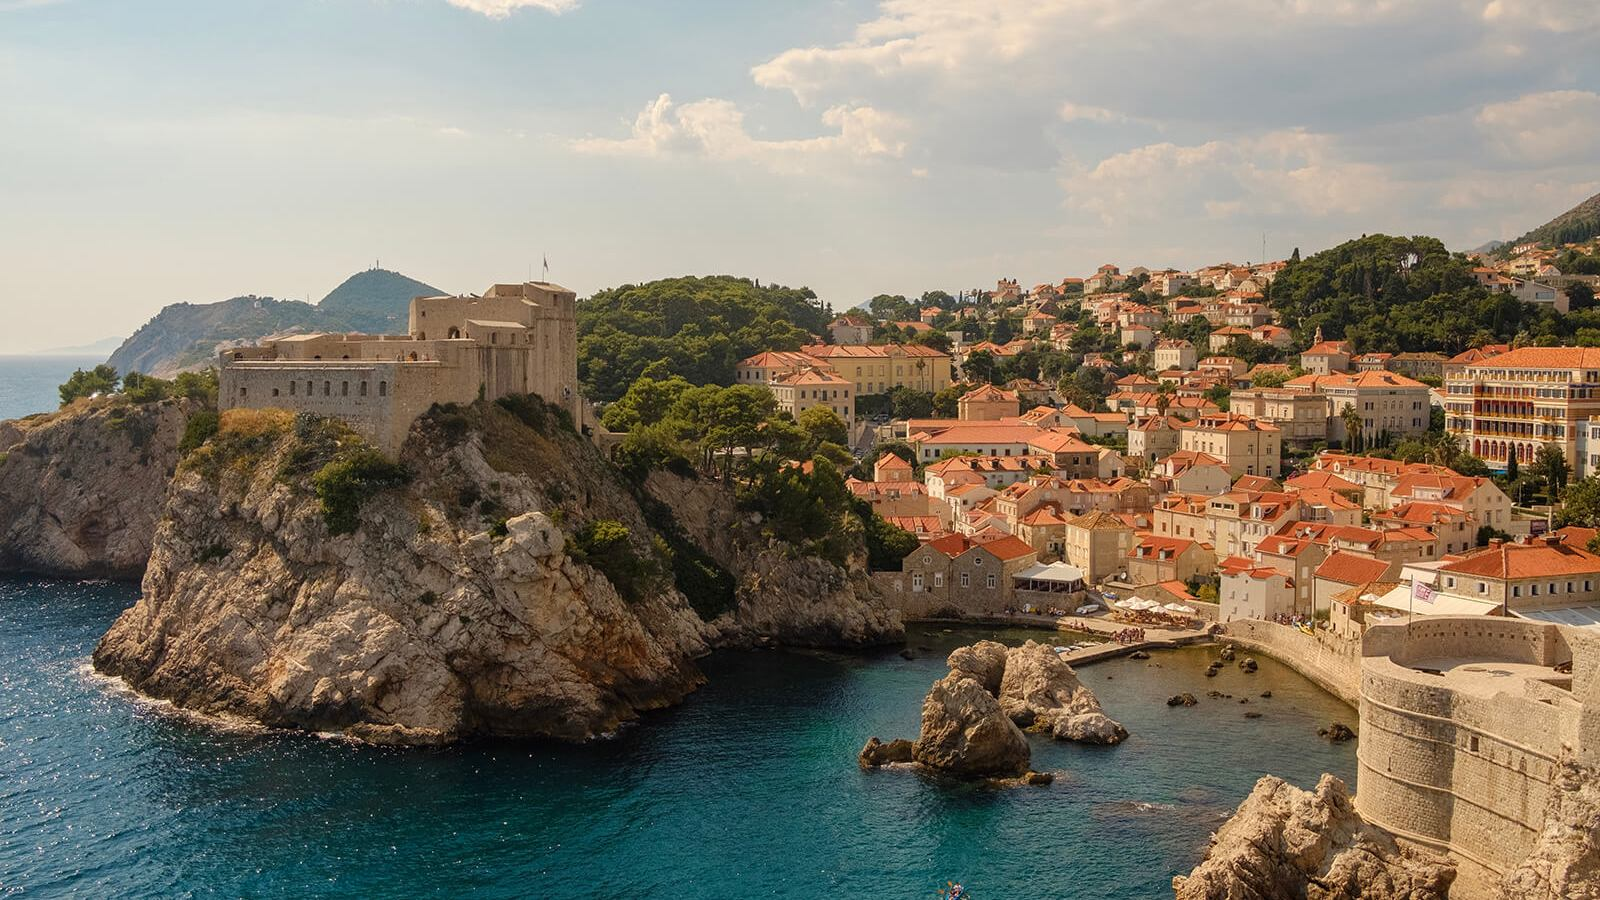 Castles and crystal blue waters of Dubrovnik, Croatia